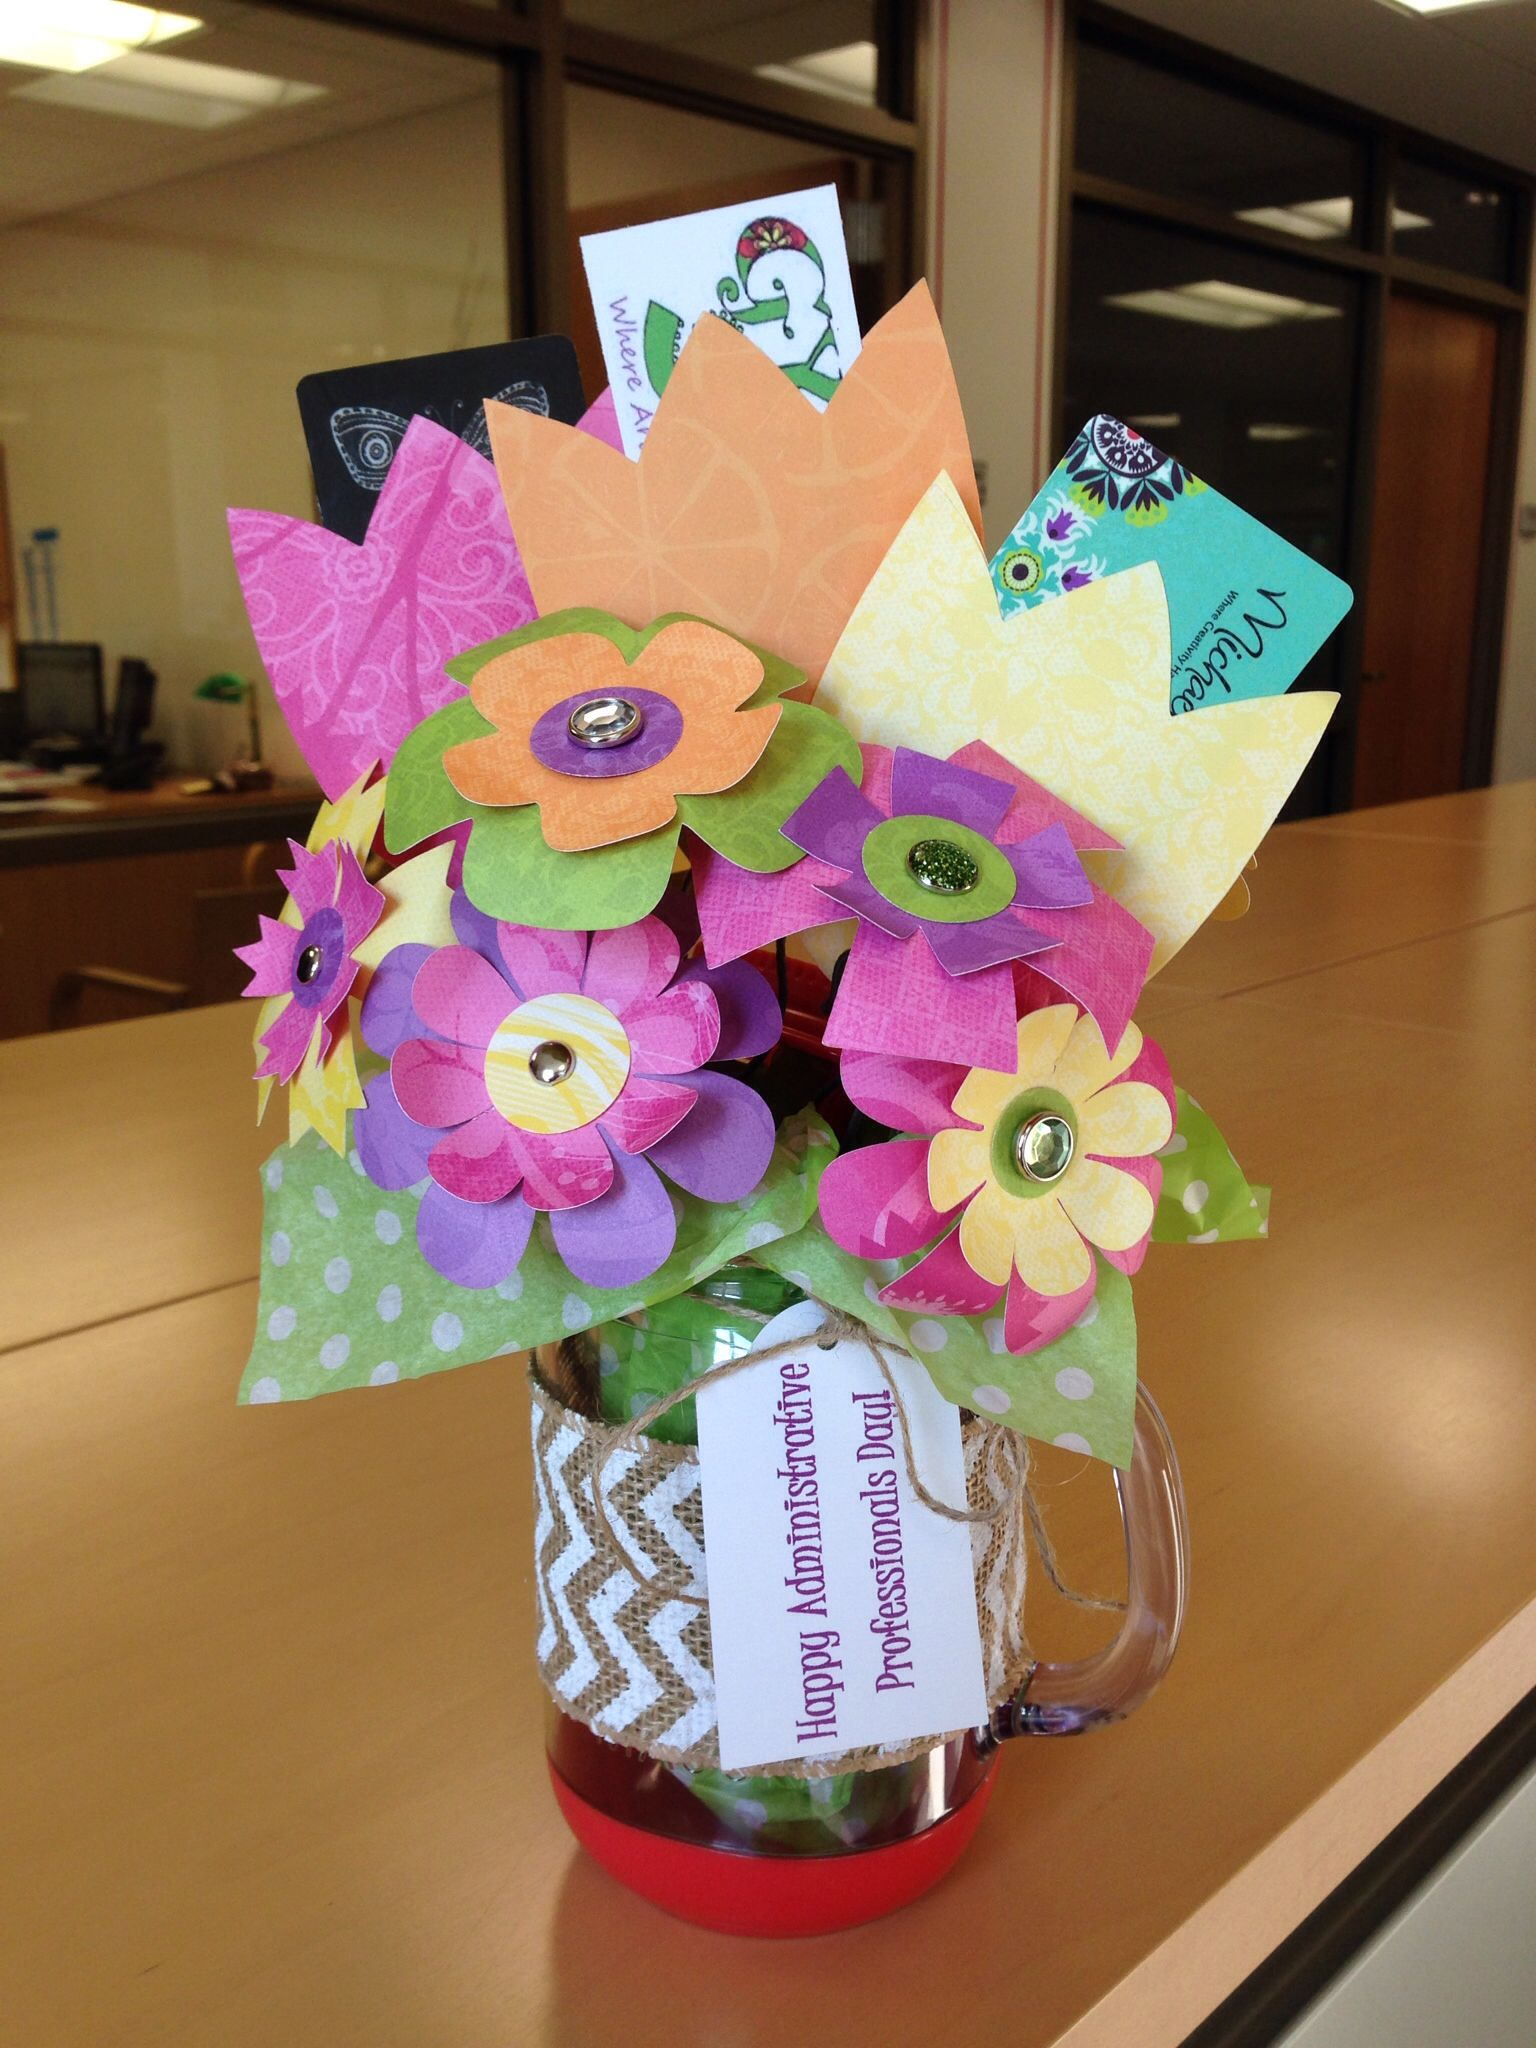 gift card bouquet for administrative professionals day. Would be ... administrative professionals day